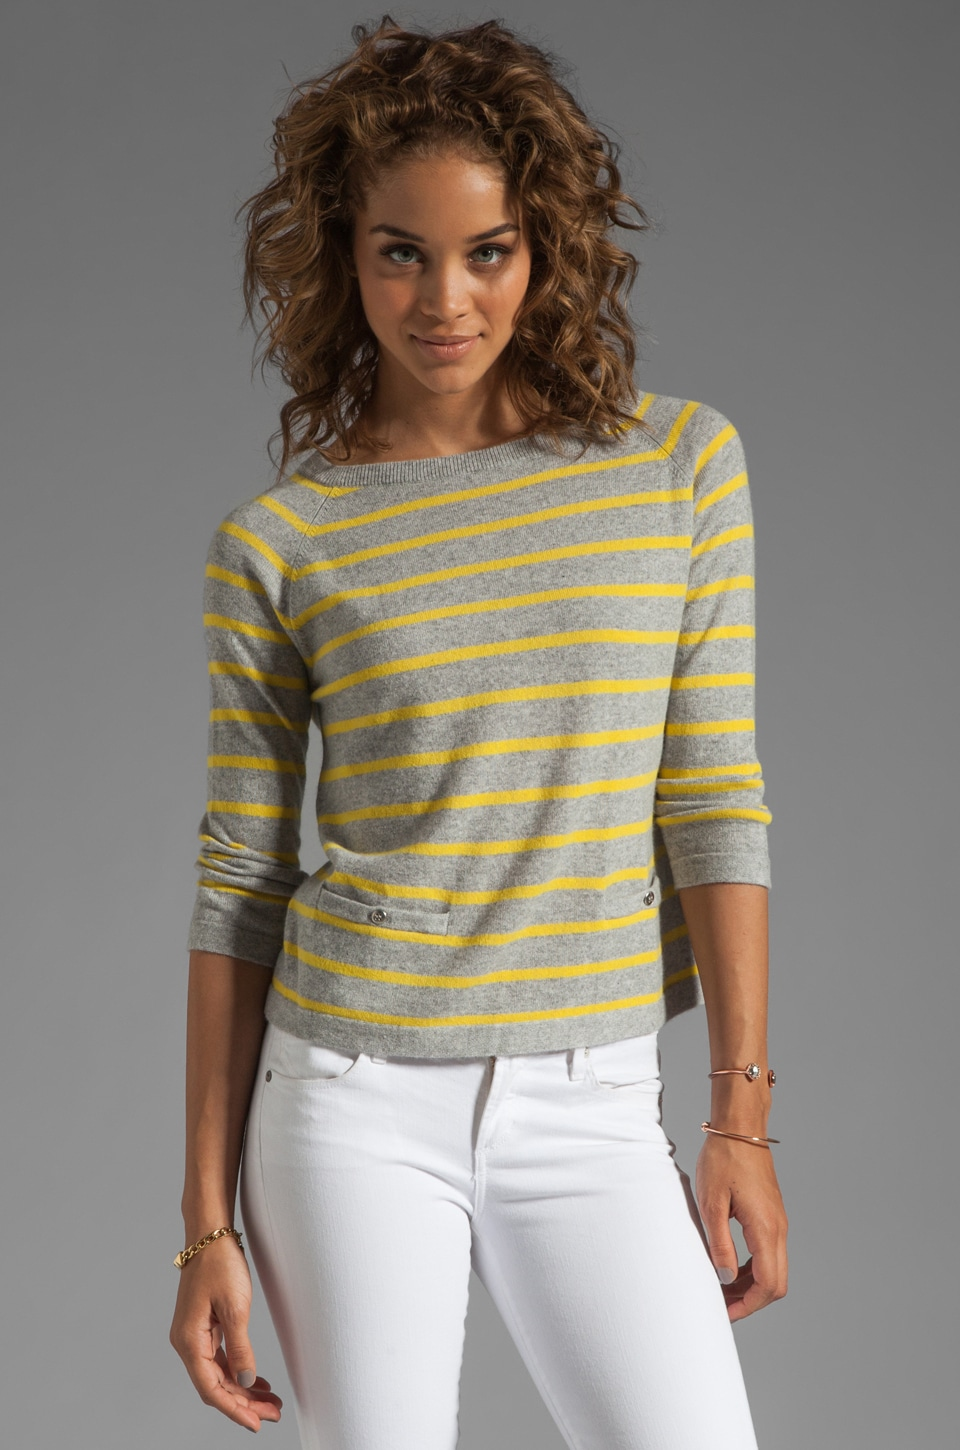 Autumn Cashmere Pencil Stripe Boxy Crew with Pockets in Bankers Sweatshirt/Saffron